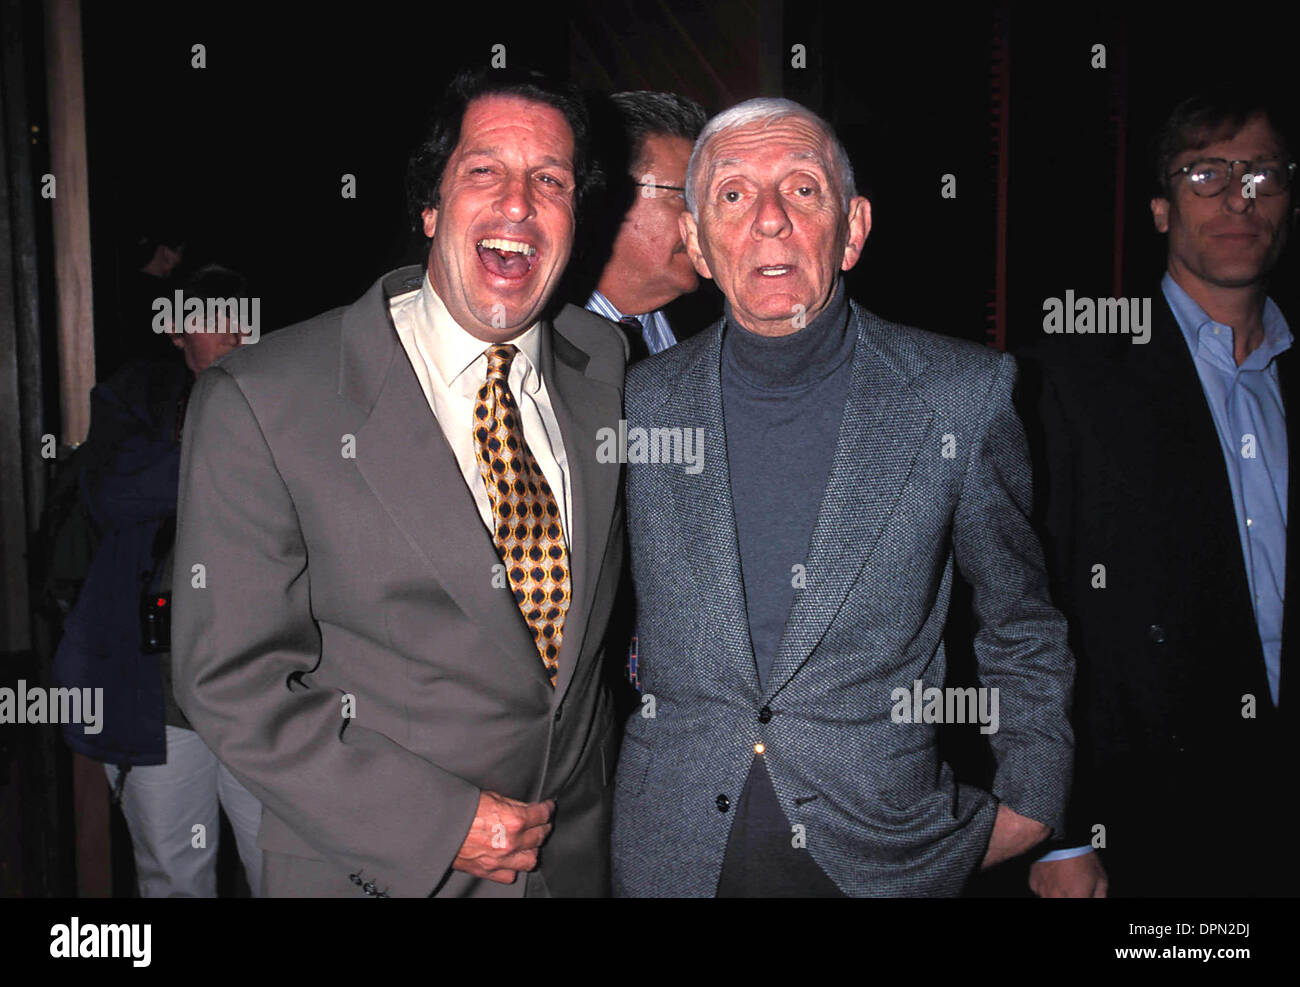 June 26, 2006 - K13963LR.BEVERLY HILLS 90210 250TH EPISODE PARTY .PETER ROTH AND AARON SPELLING 11-04-1998. LISA ROSE-  PHOTOS(Credit Image: © Globe Photos/ZUMAPRESS.com) - Stock Image